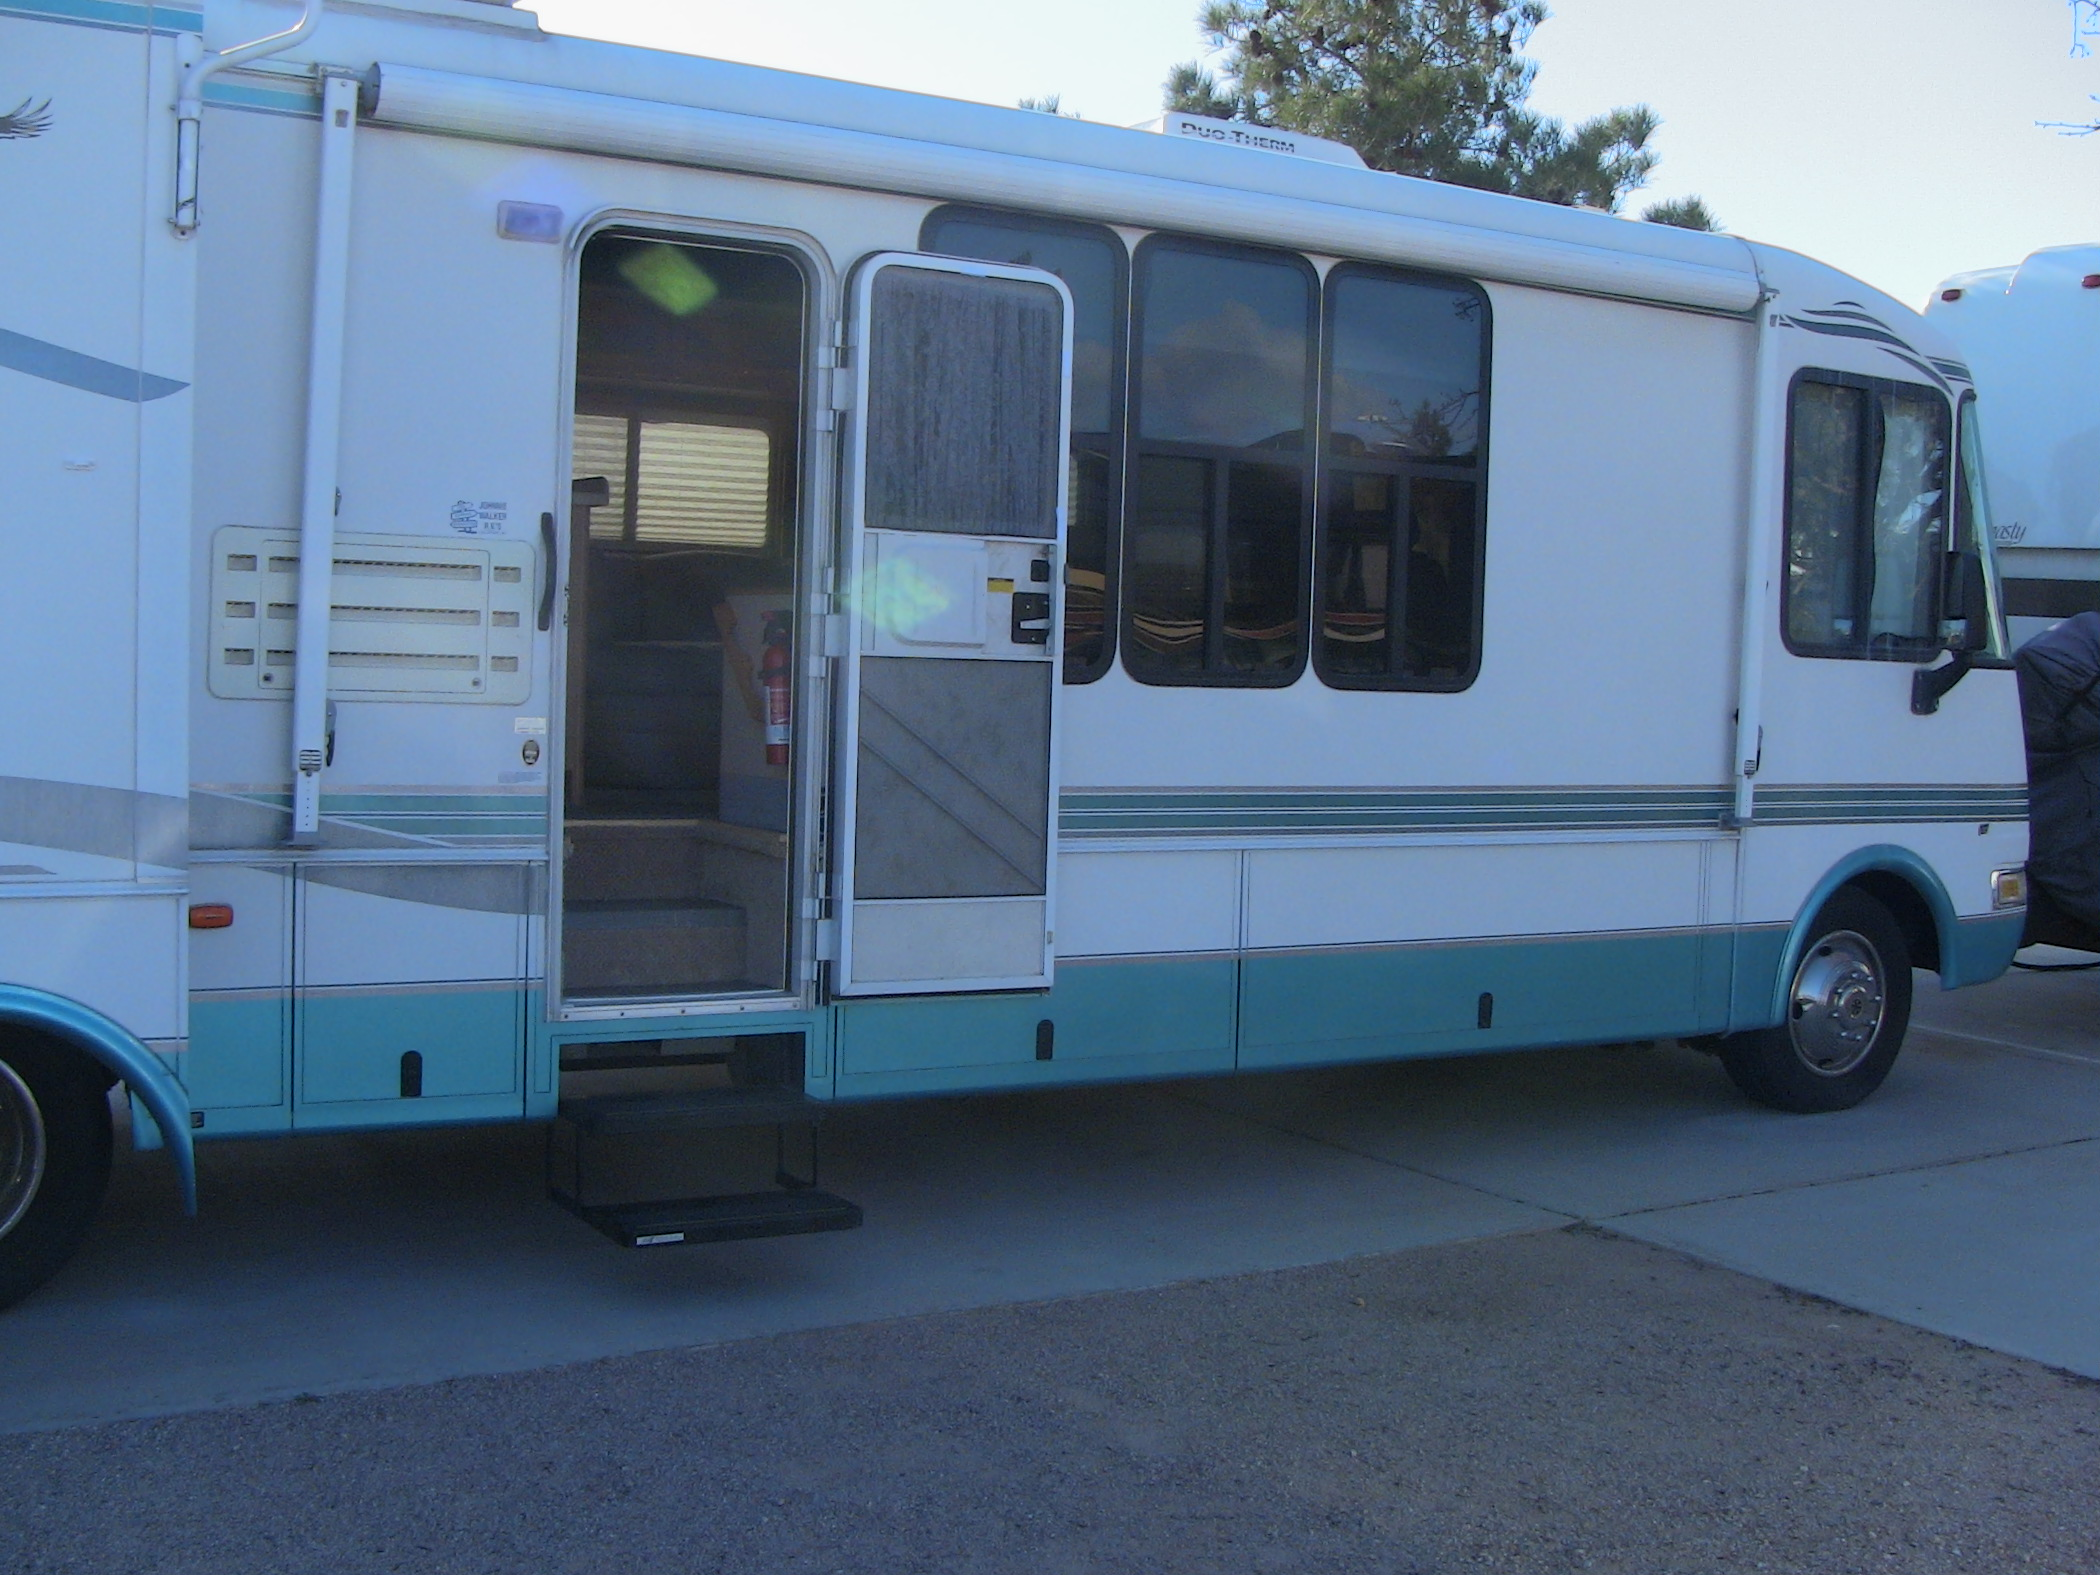 RV for sale by owner Las Vegas Henderson NV - My Car Lady